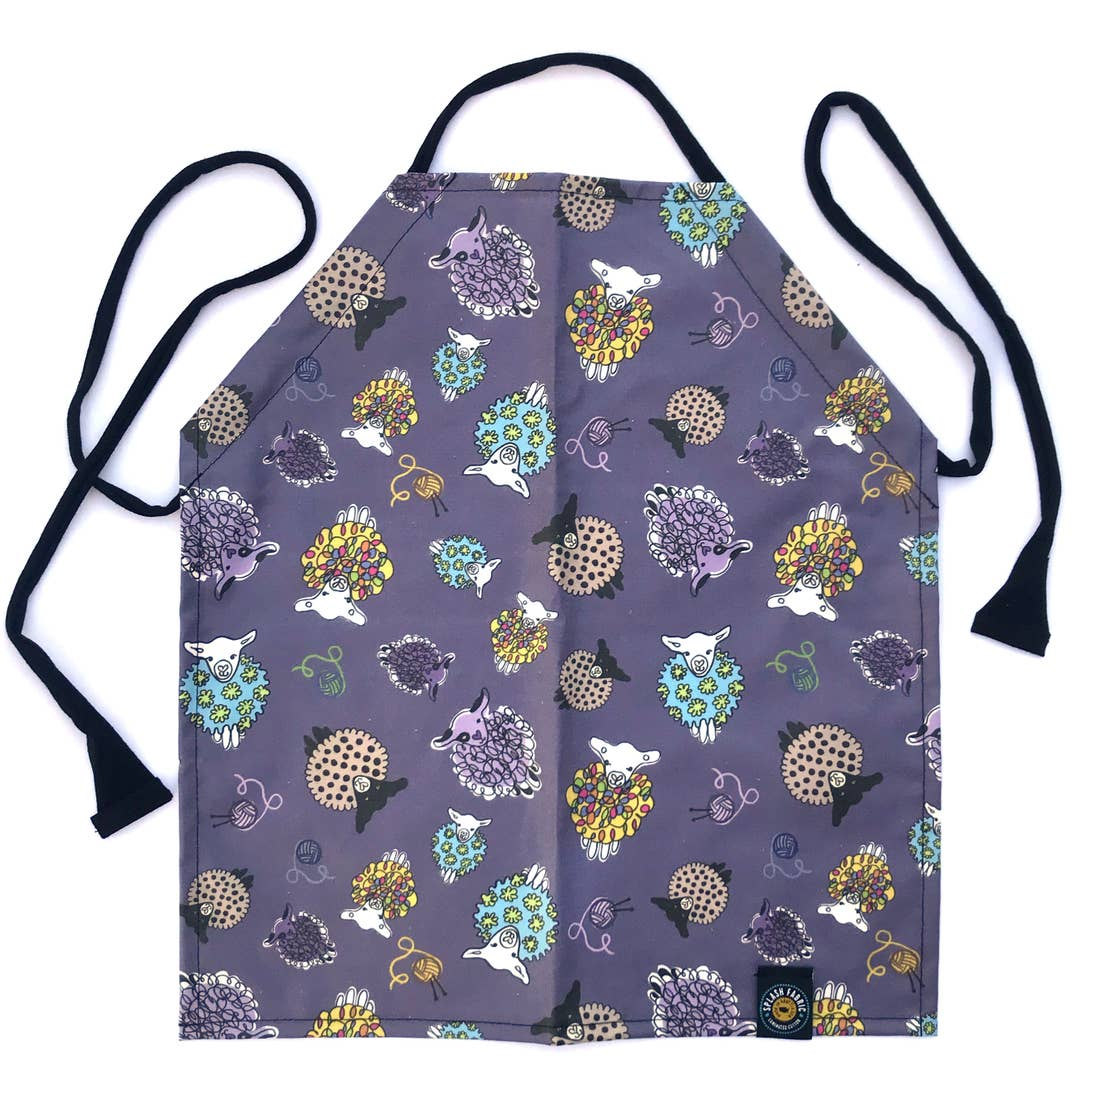 Kids Easy Wipe and Wash Apron - Assorted Patterns